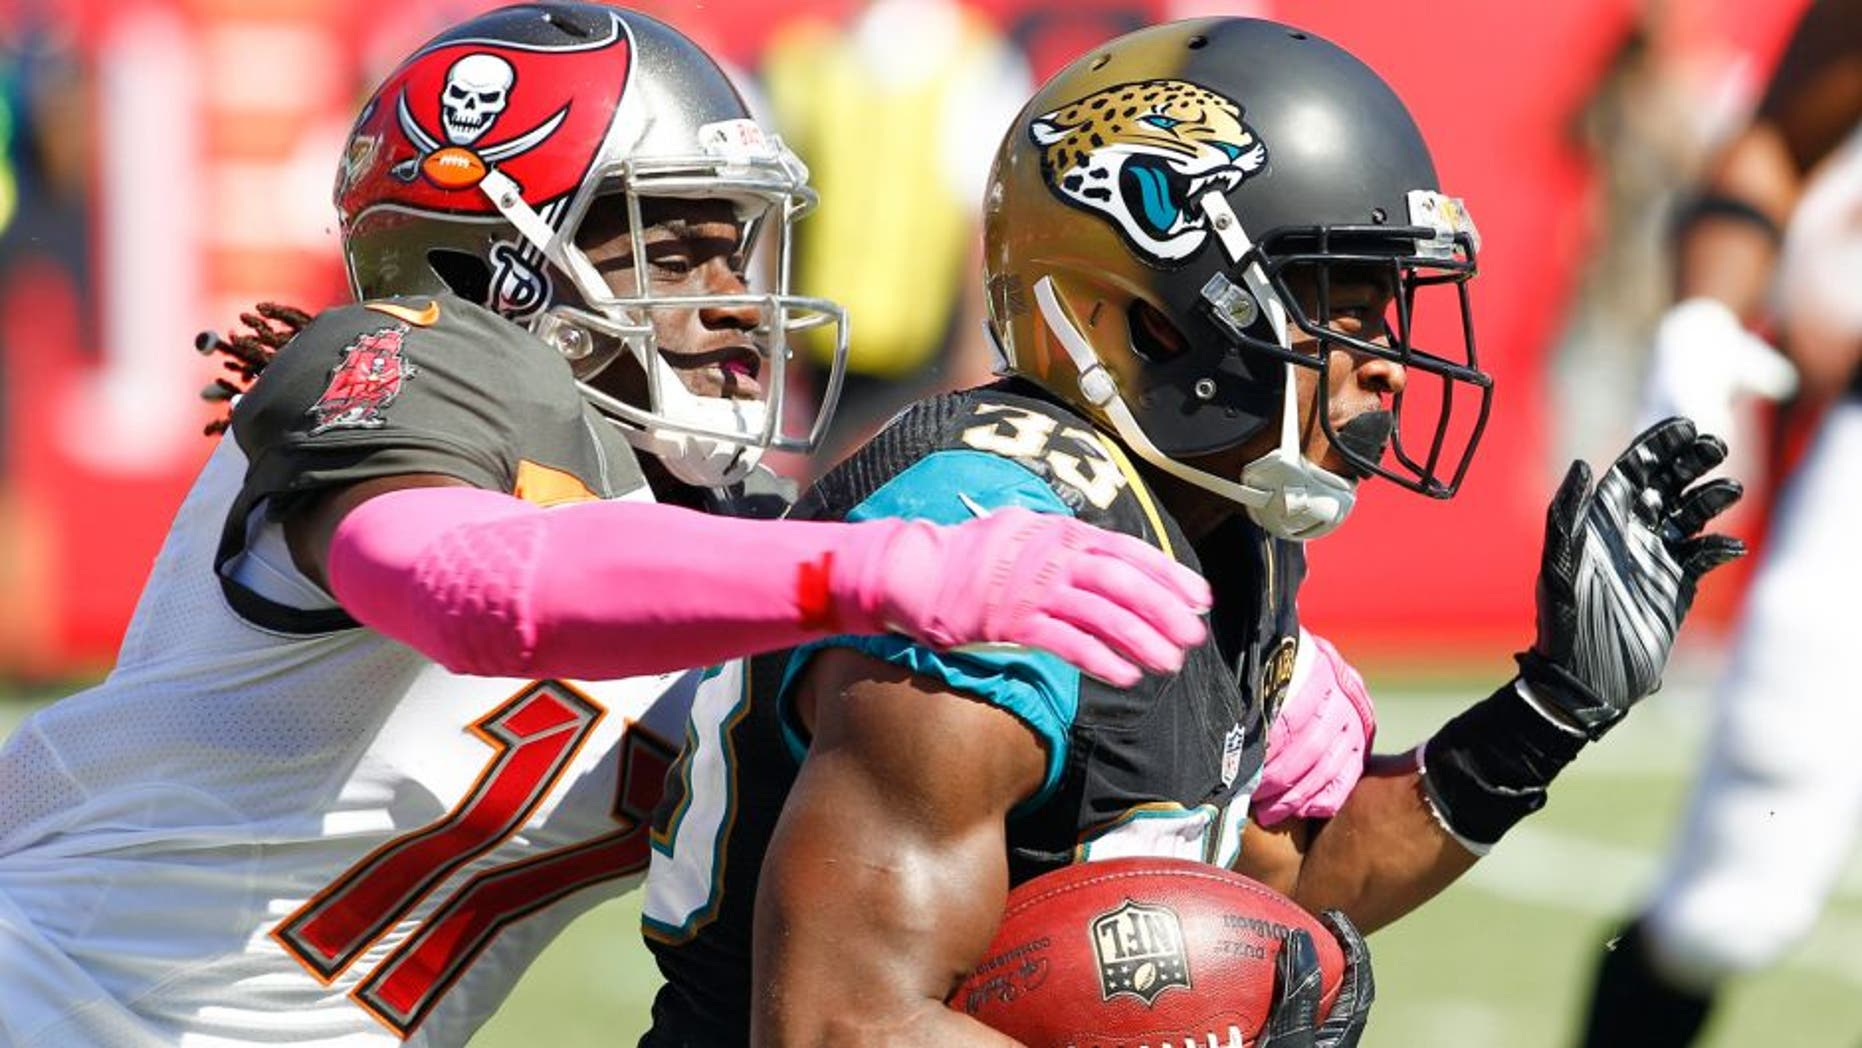 Oct 11, 2015; Tampa, FL, USA; Jacksonville Jaguars running back Corey Grant (33) is tackled from behind by Tampa Bay Buccaneers wide receiver Donteea Dye (17) during the second half of an NFL football game at Raymond James Stadium. Tampa won 38-31. Mandatory Credit: Reinhold Matay-USA TODAY Sports